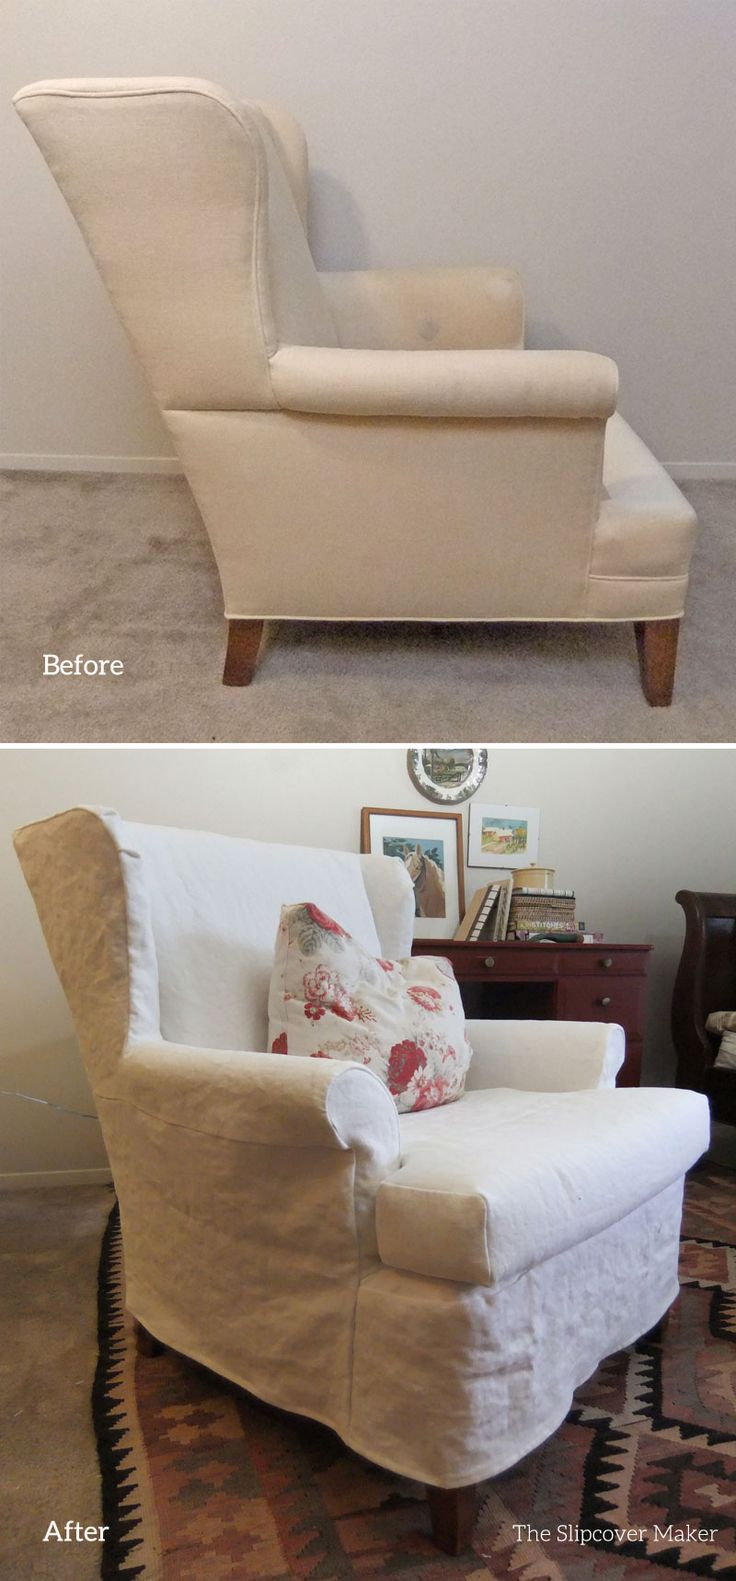 Top 25+ best Slipcovers ideas on Pinterest | Cushions for couch ...